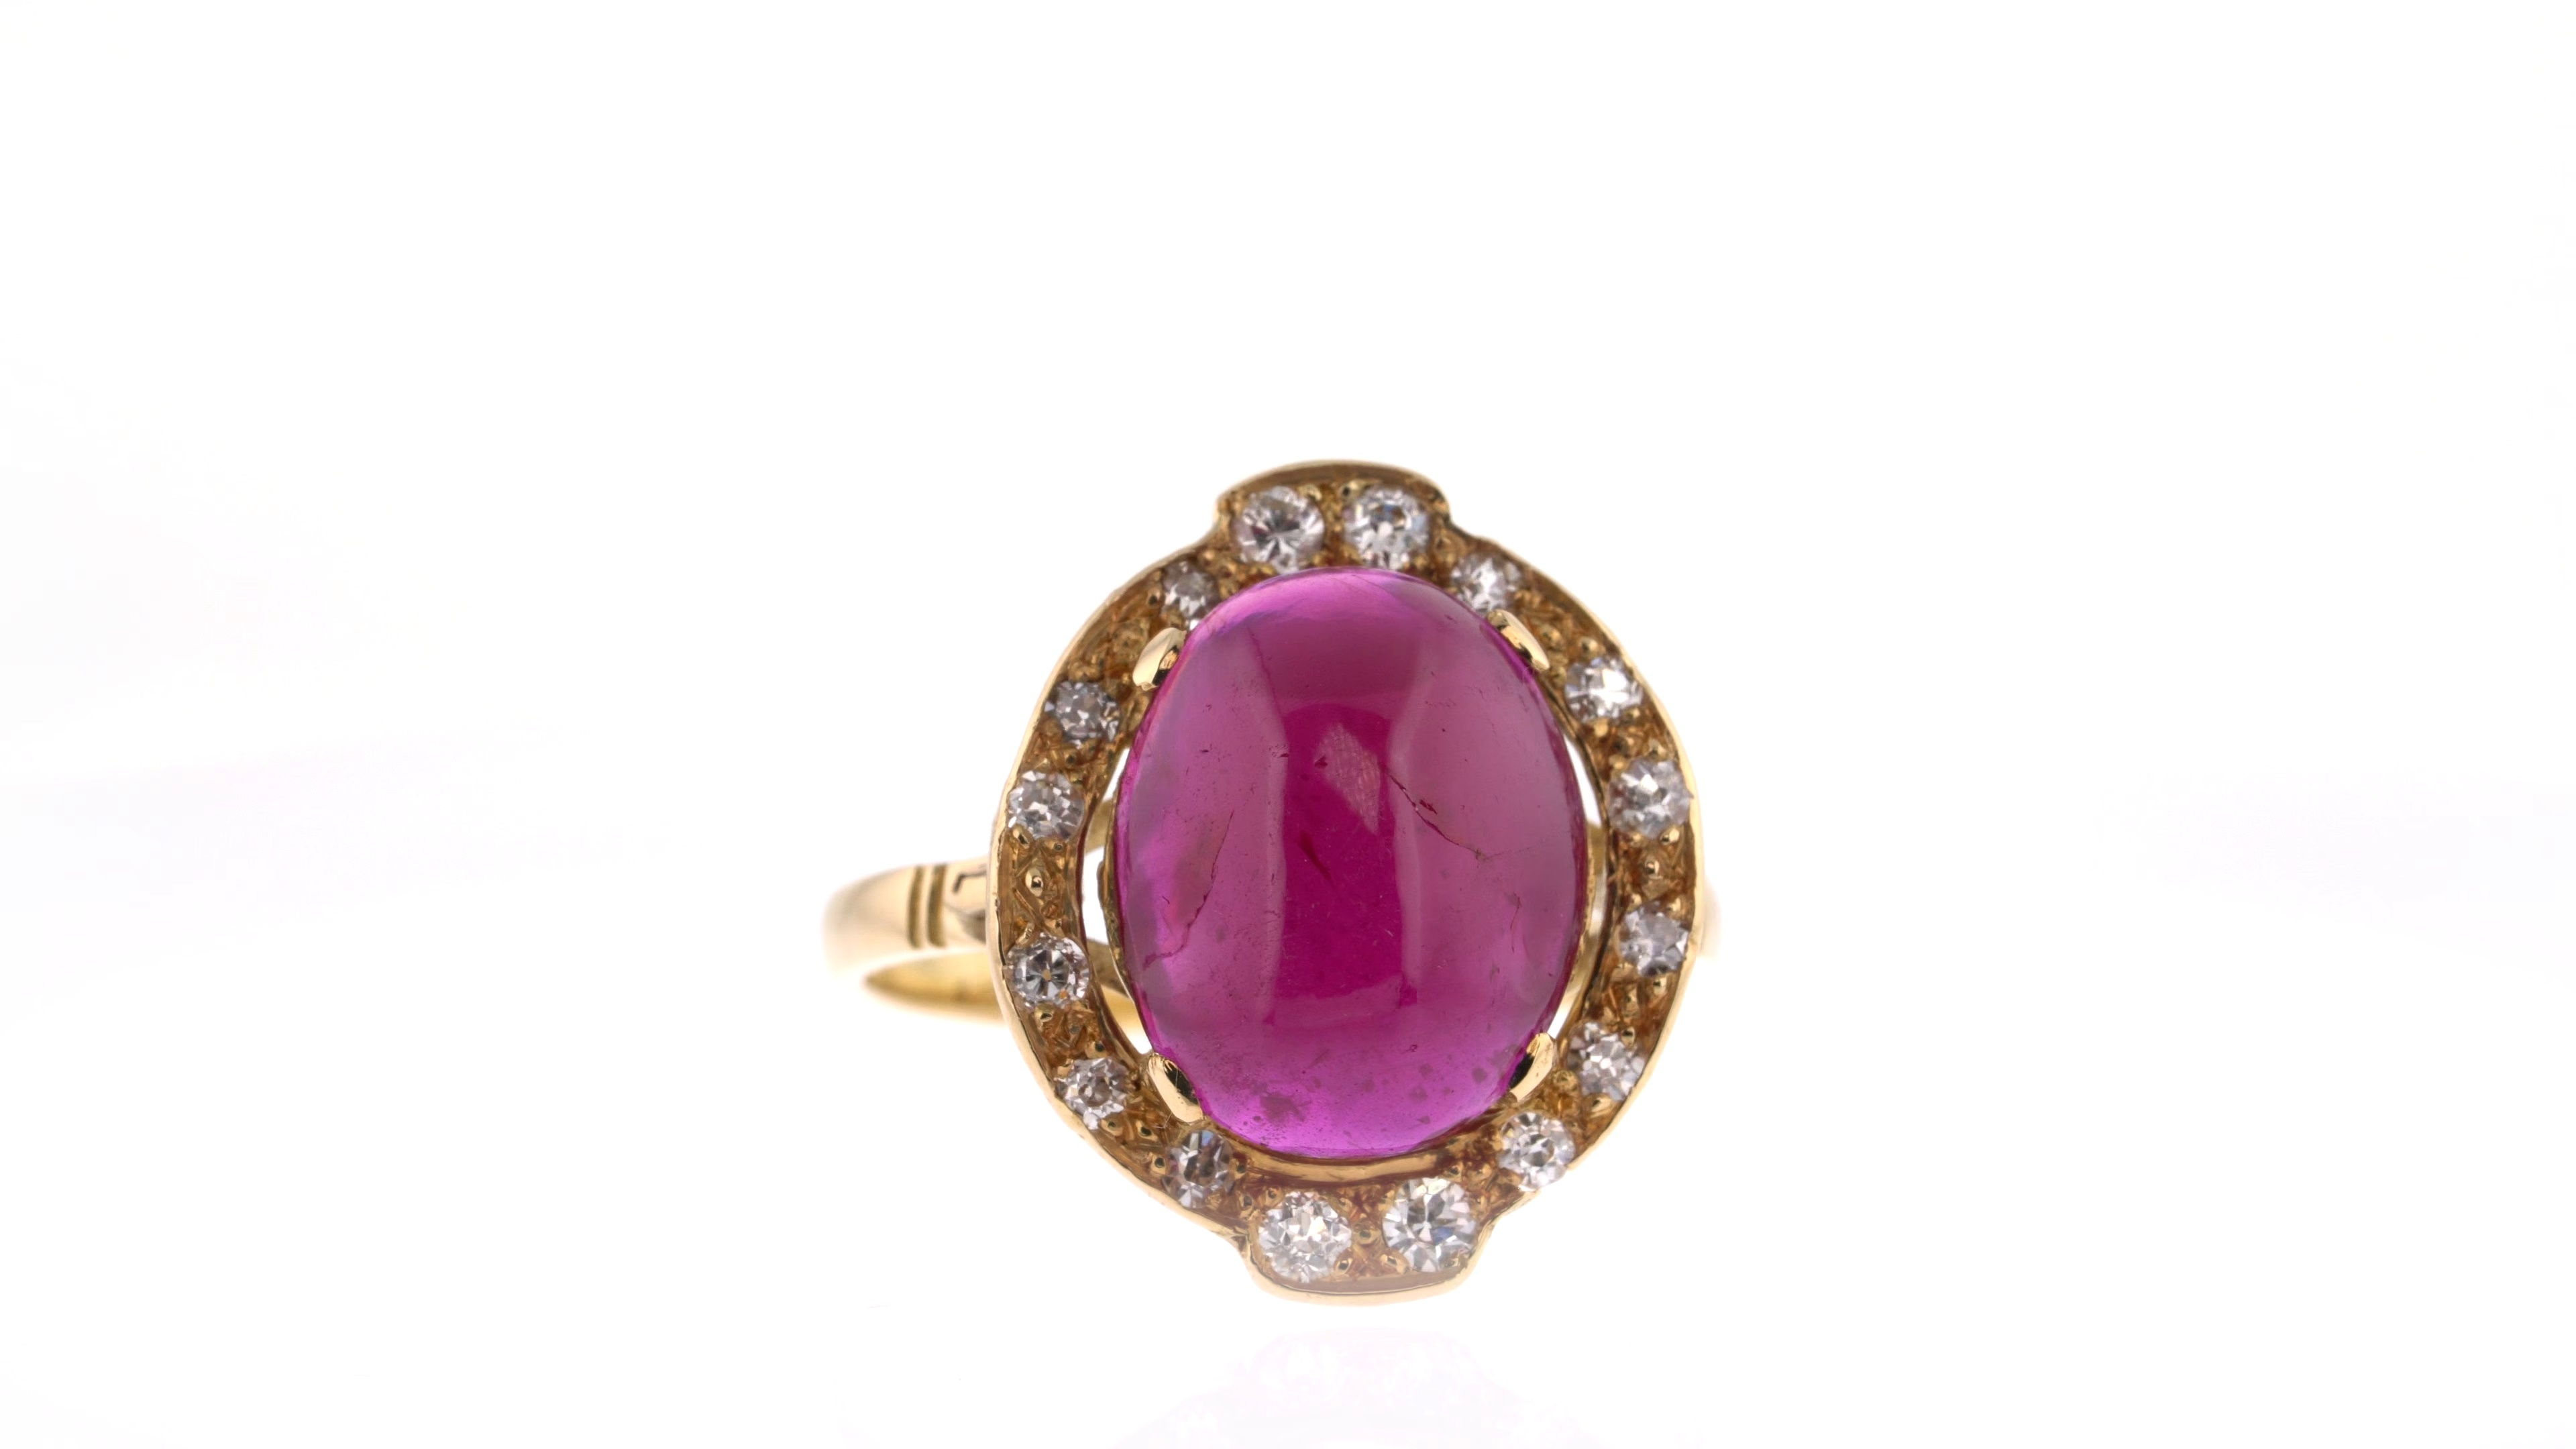 ruby cabochon ring with white diamond surround